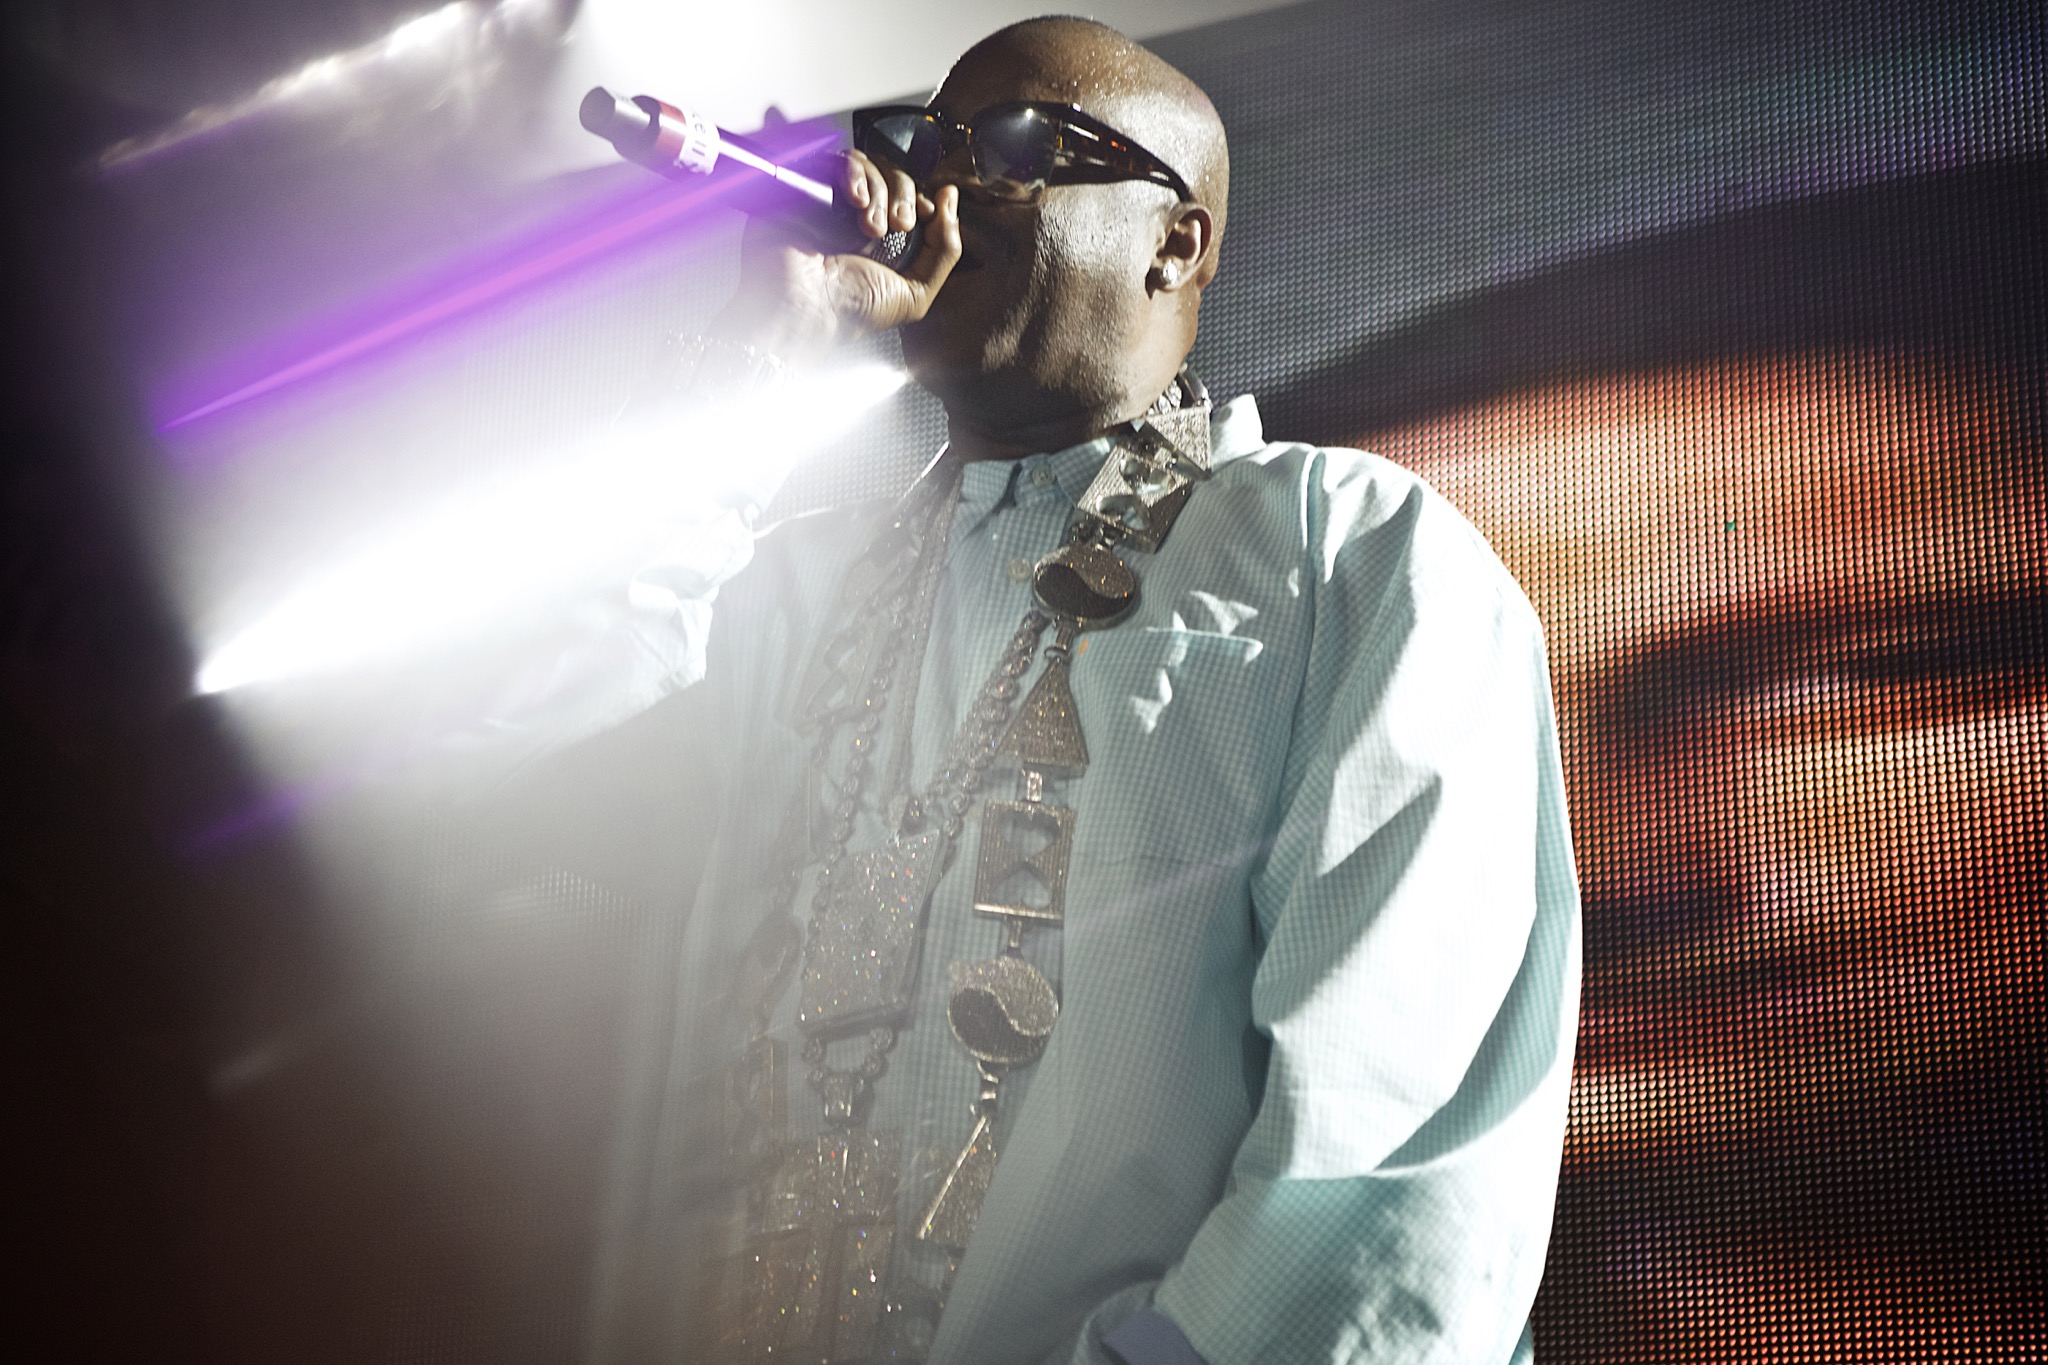 King Ice at Snoop Dogg C Day Party.62.jpg